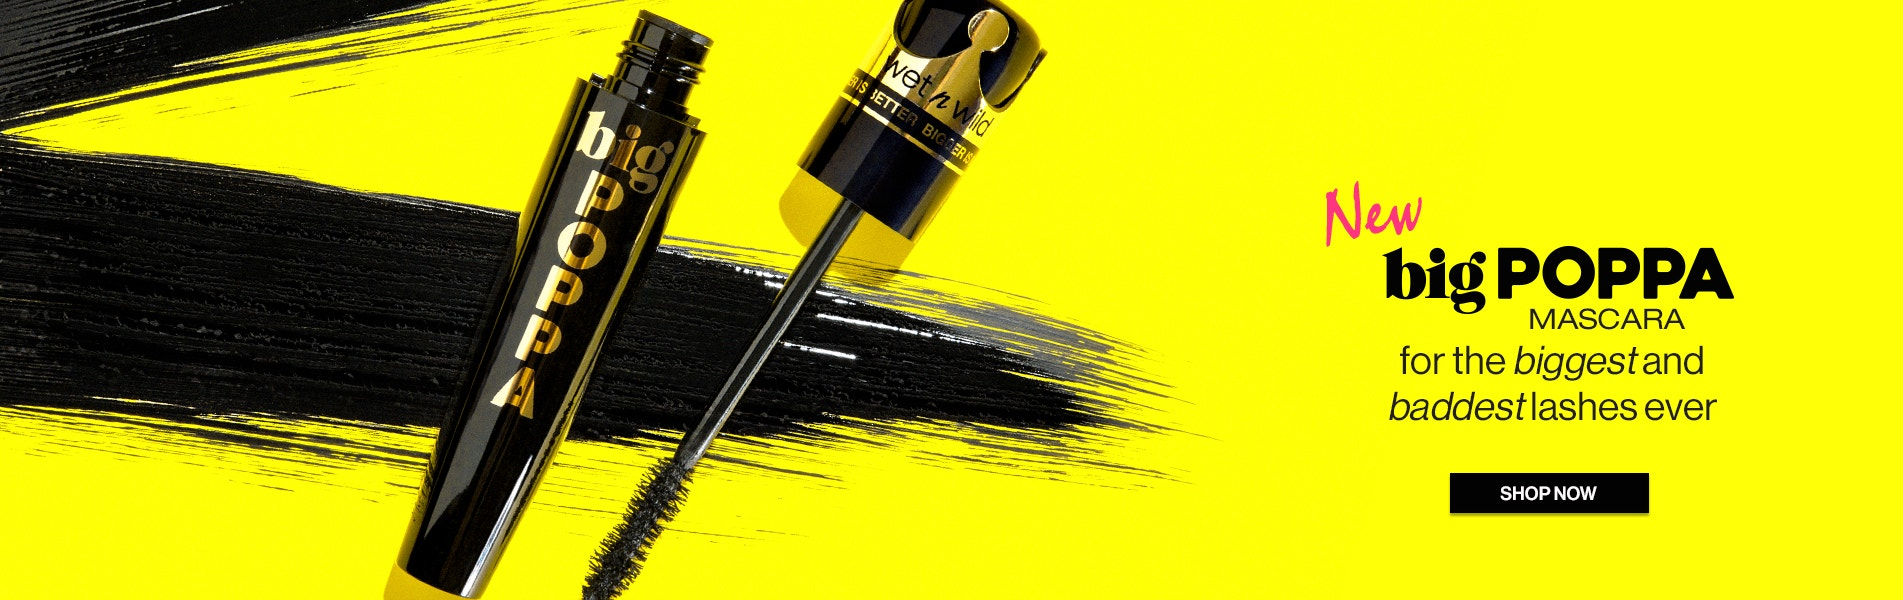 wet n wild | NEW Big Poppa Mascara for the biggest and baddest lashes ever | Mascara on a yellow background open | SHOP NOW